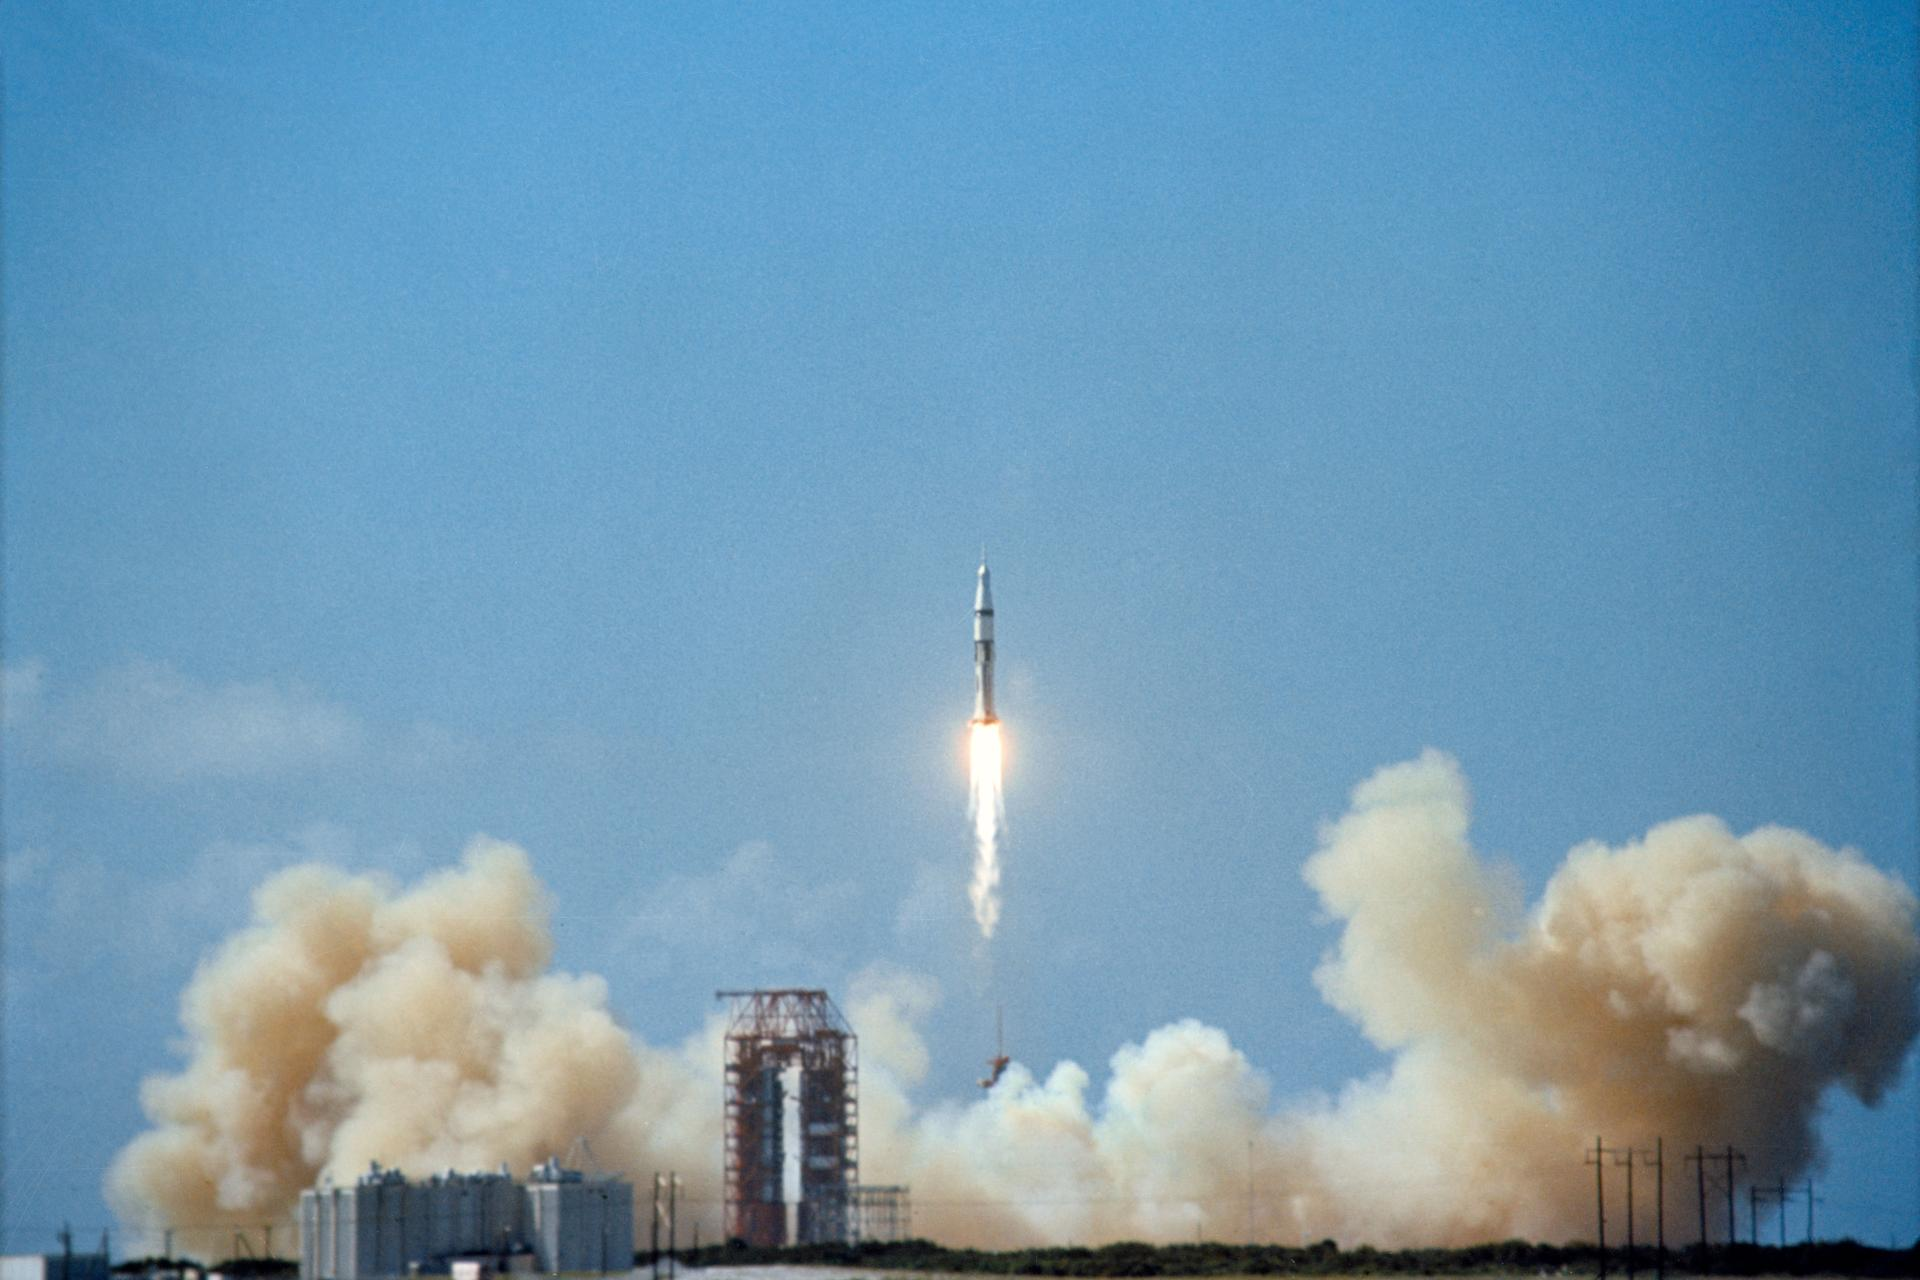 The successful launch of Apollo 7 in October, 1968, to test the command module, paved the way for a dash to the Moon.